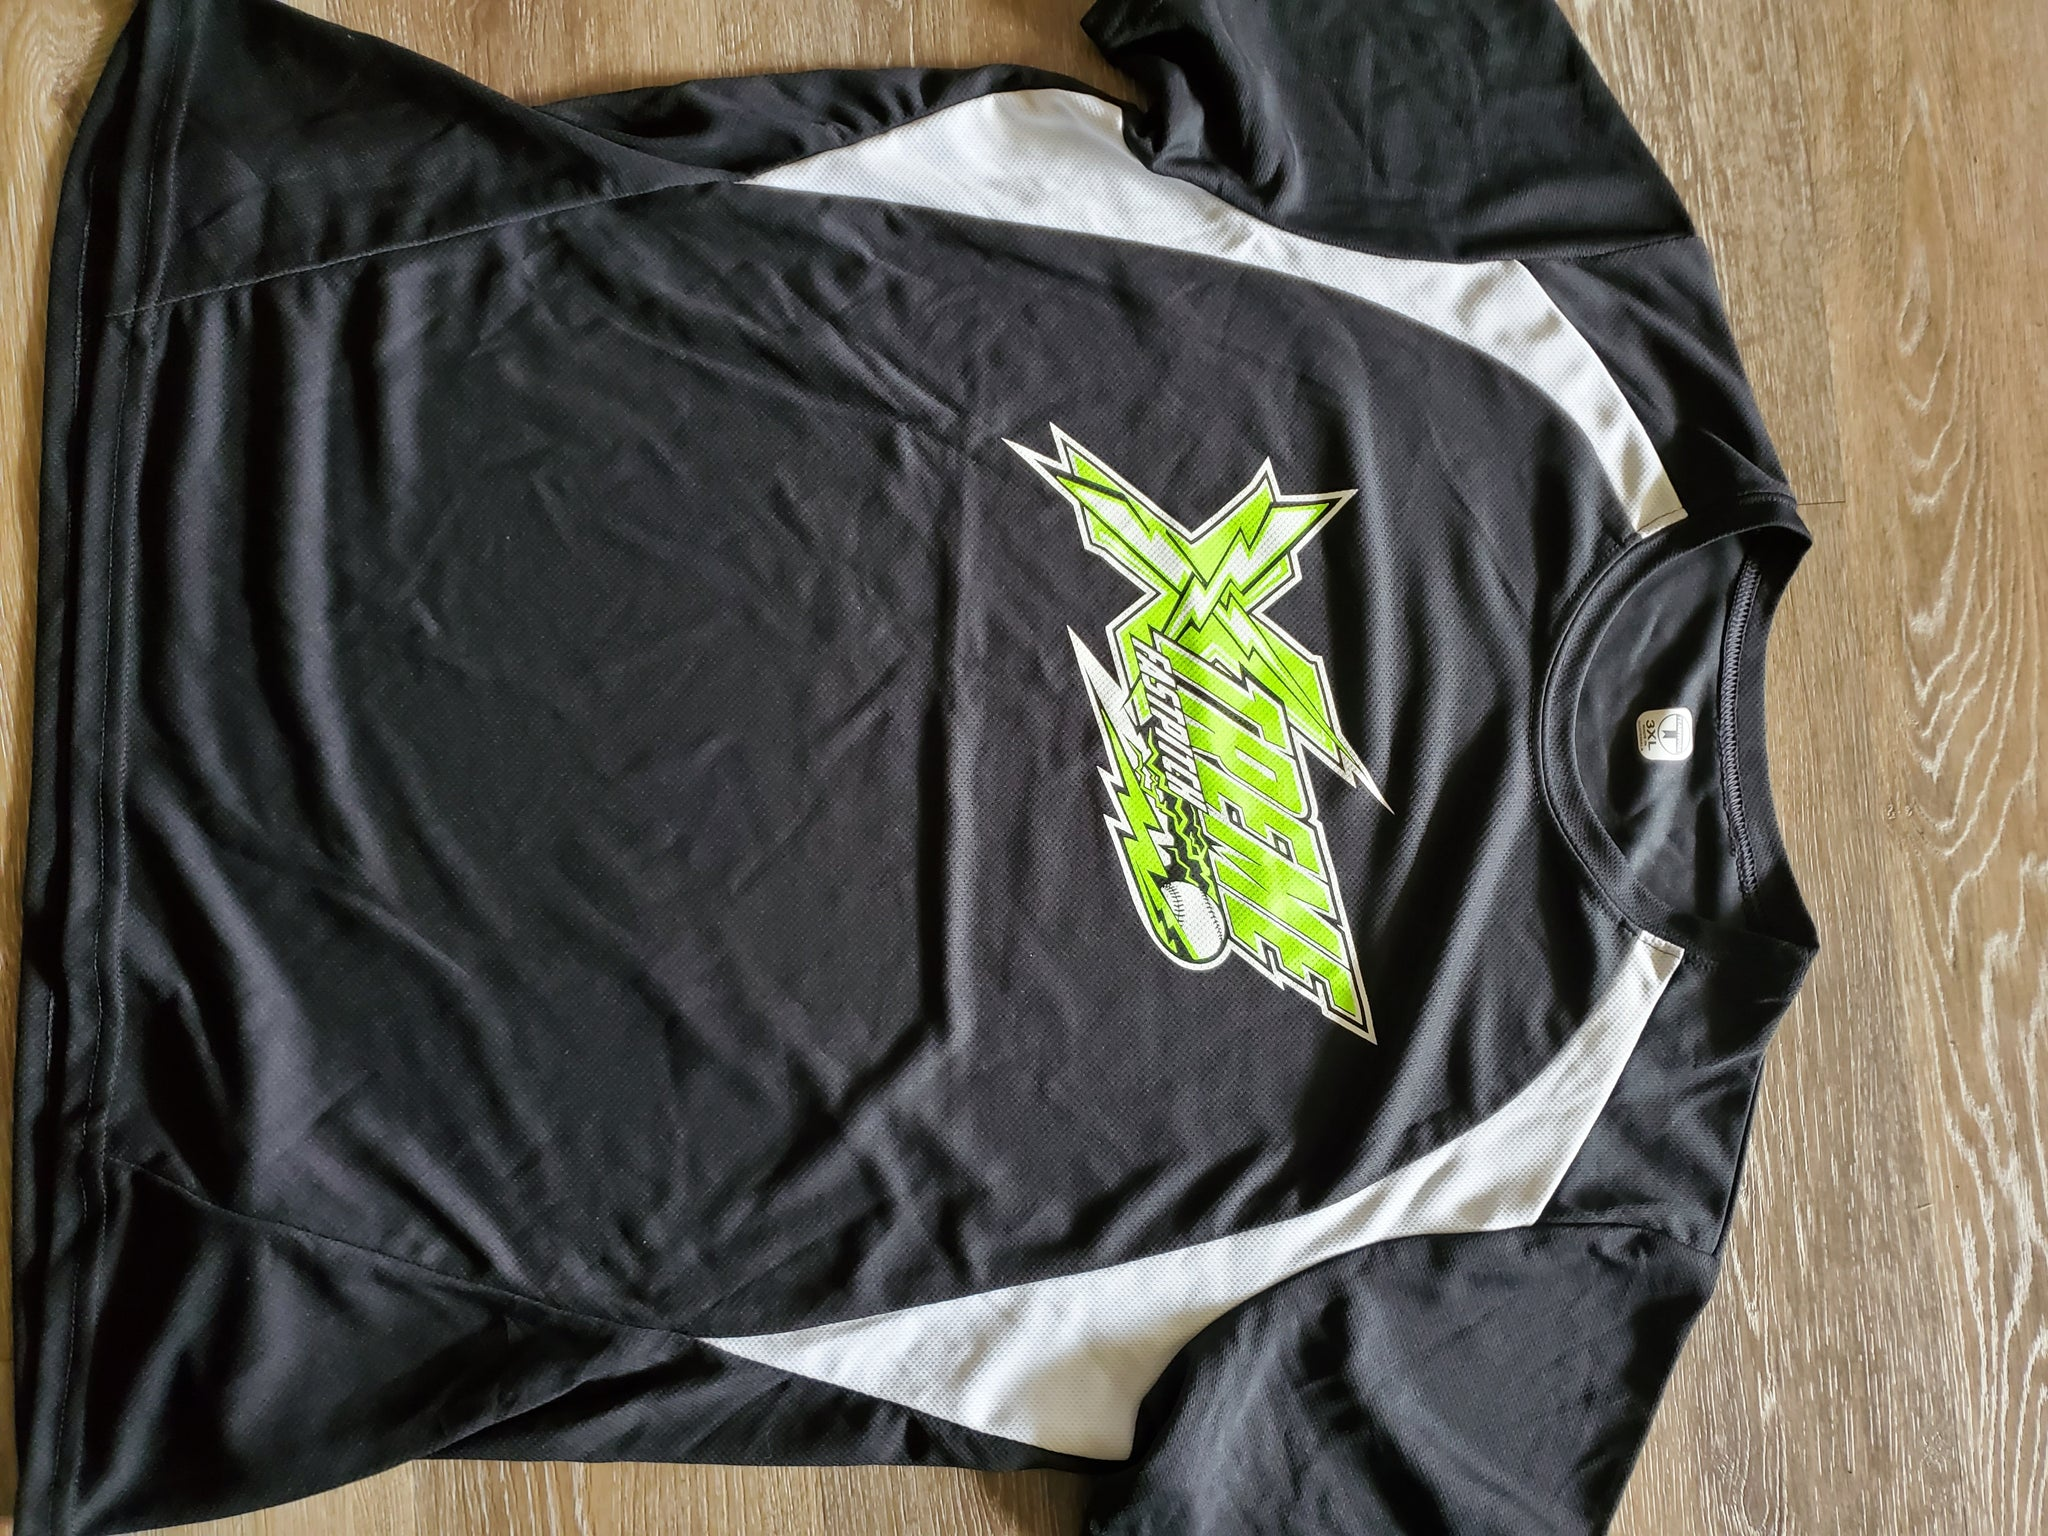 Ladies jersey 3xl